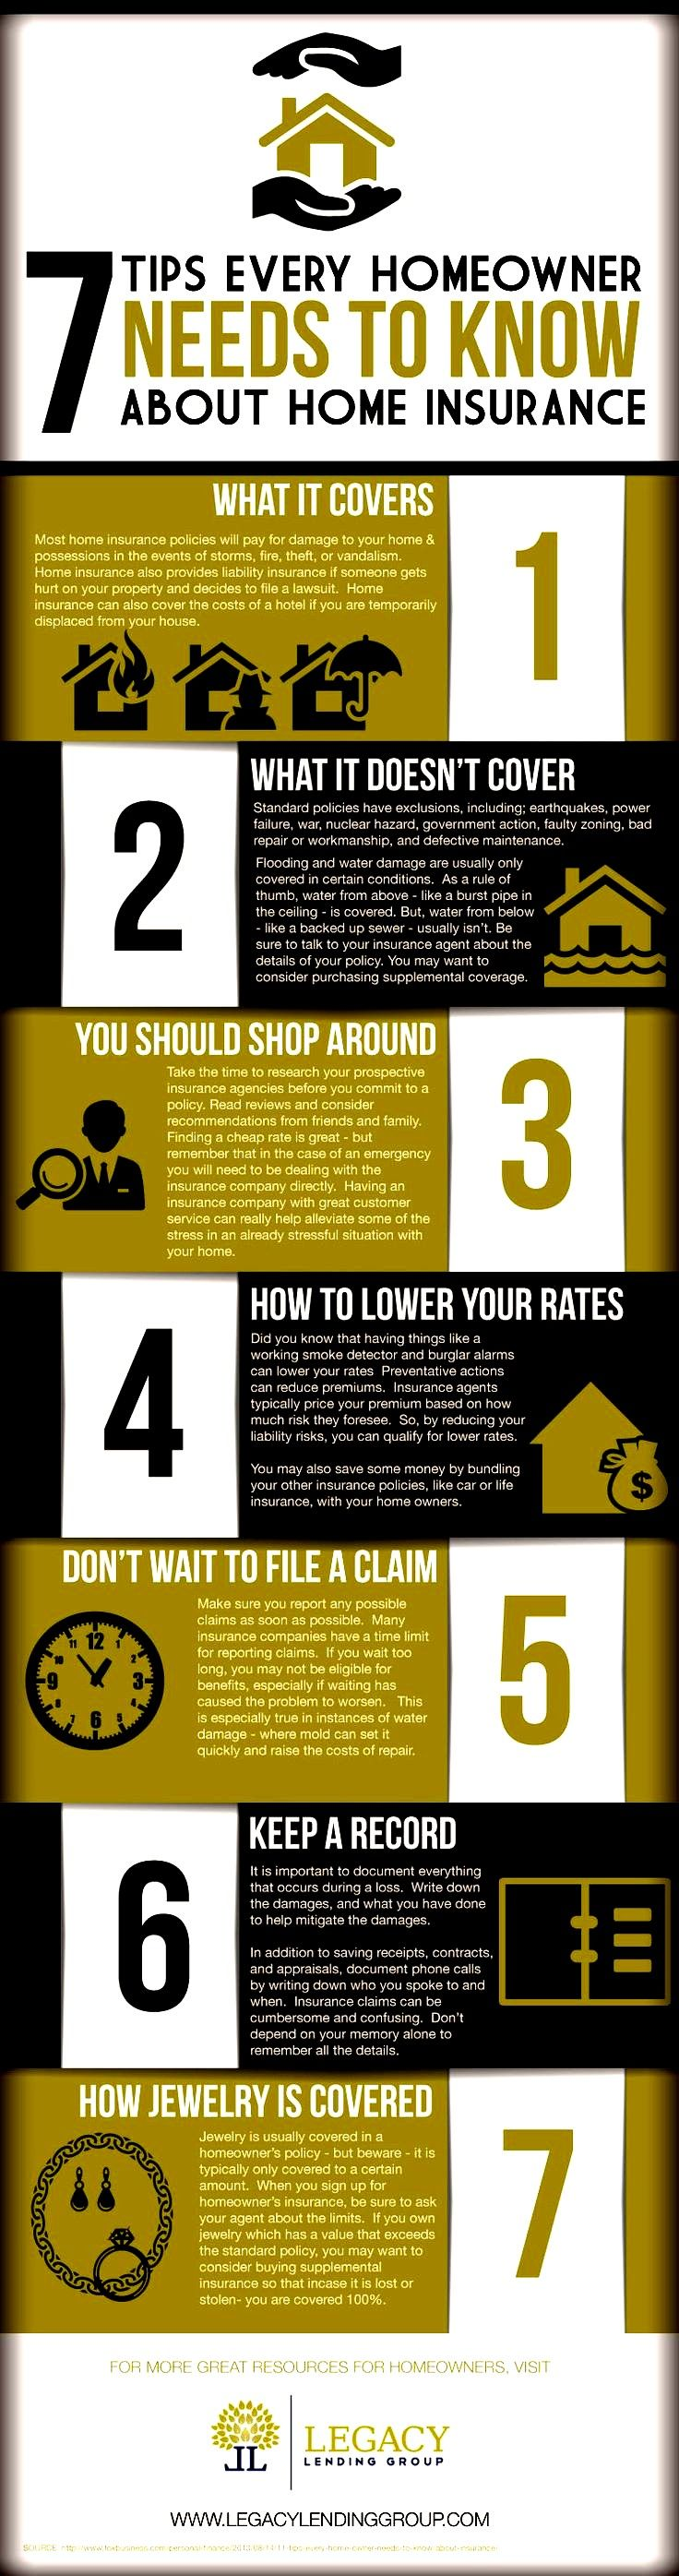 Home Insurance Knowledge For When You Purchase A Home